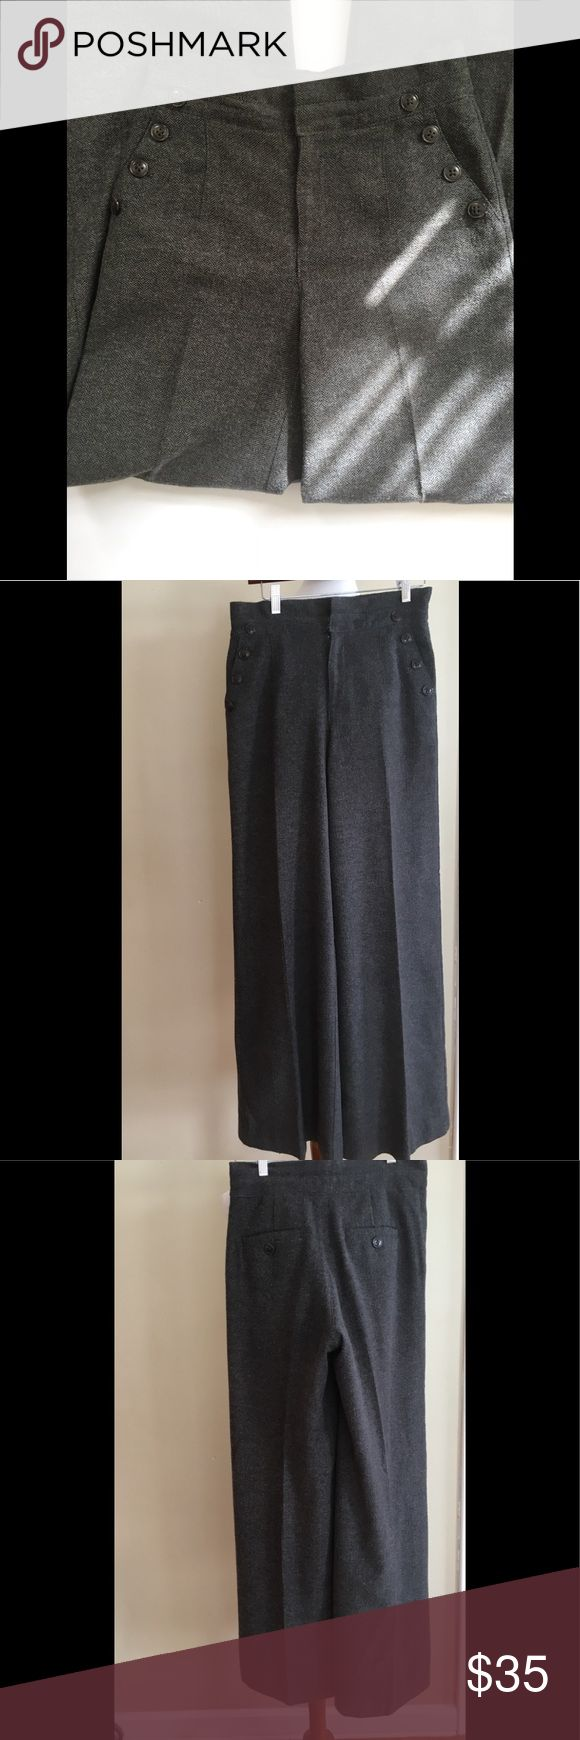 "Daughters of the Liberation wide leg trouser Fabulous high waist Herringbone wide leg trouser with nautical button detail . Functional pockets , fully lined . Approx measurements -waist 15"", rise 12"", inseam 32.5 Anthropologie Pants Wide Leg"